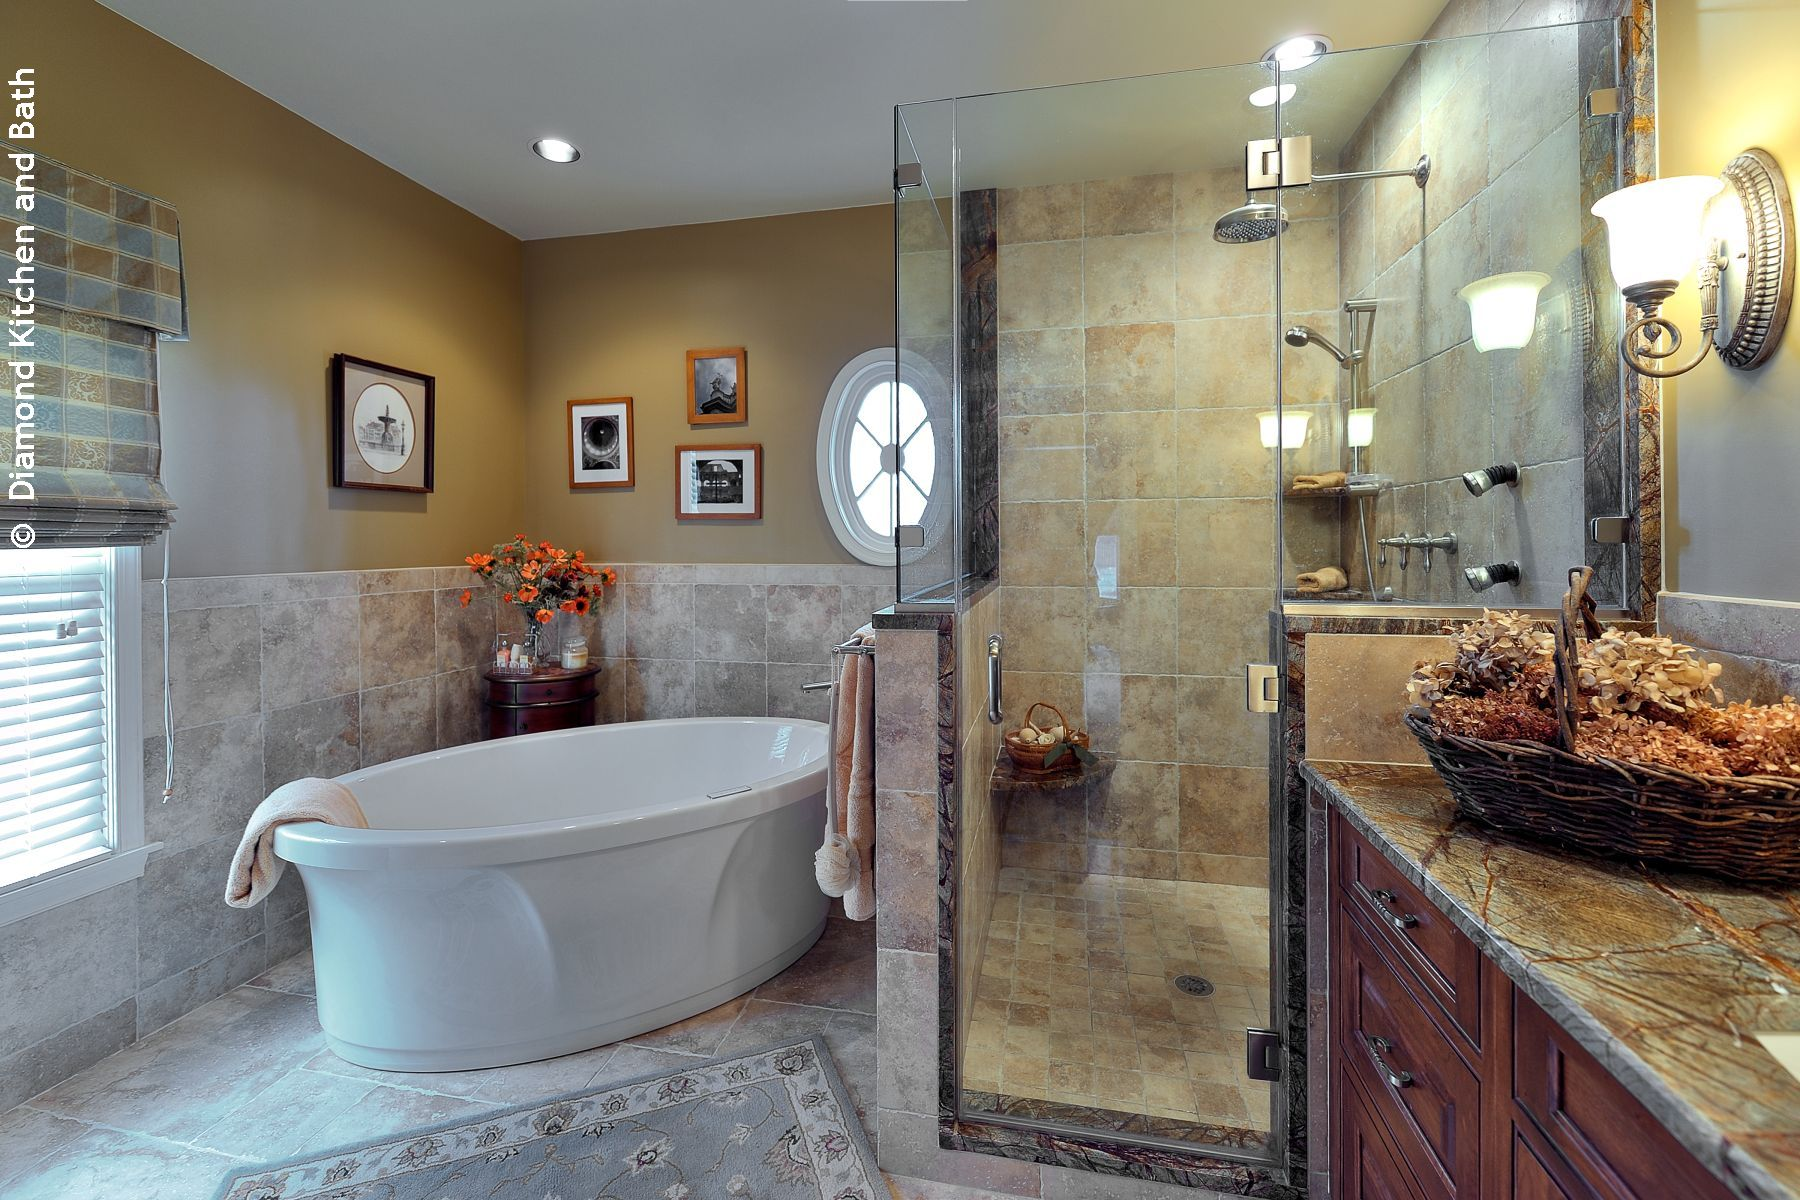 Bathroom Remodeling Virtual Tour in Richboro, PA